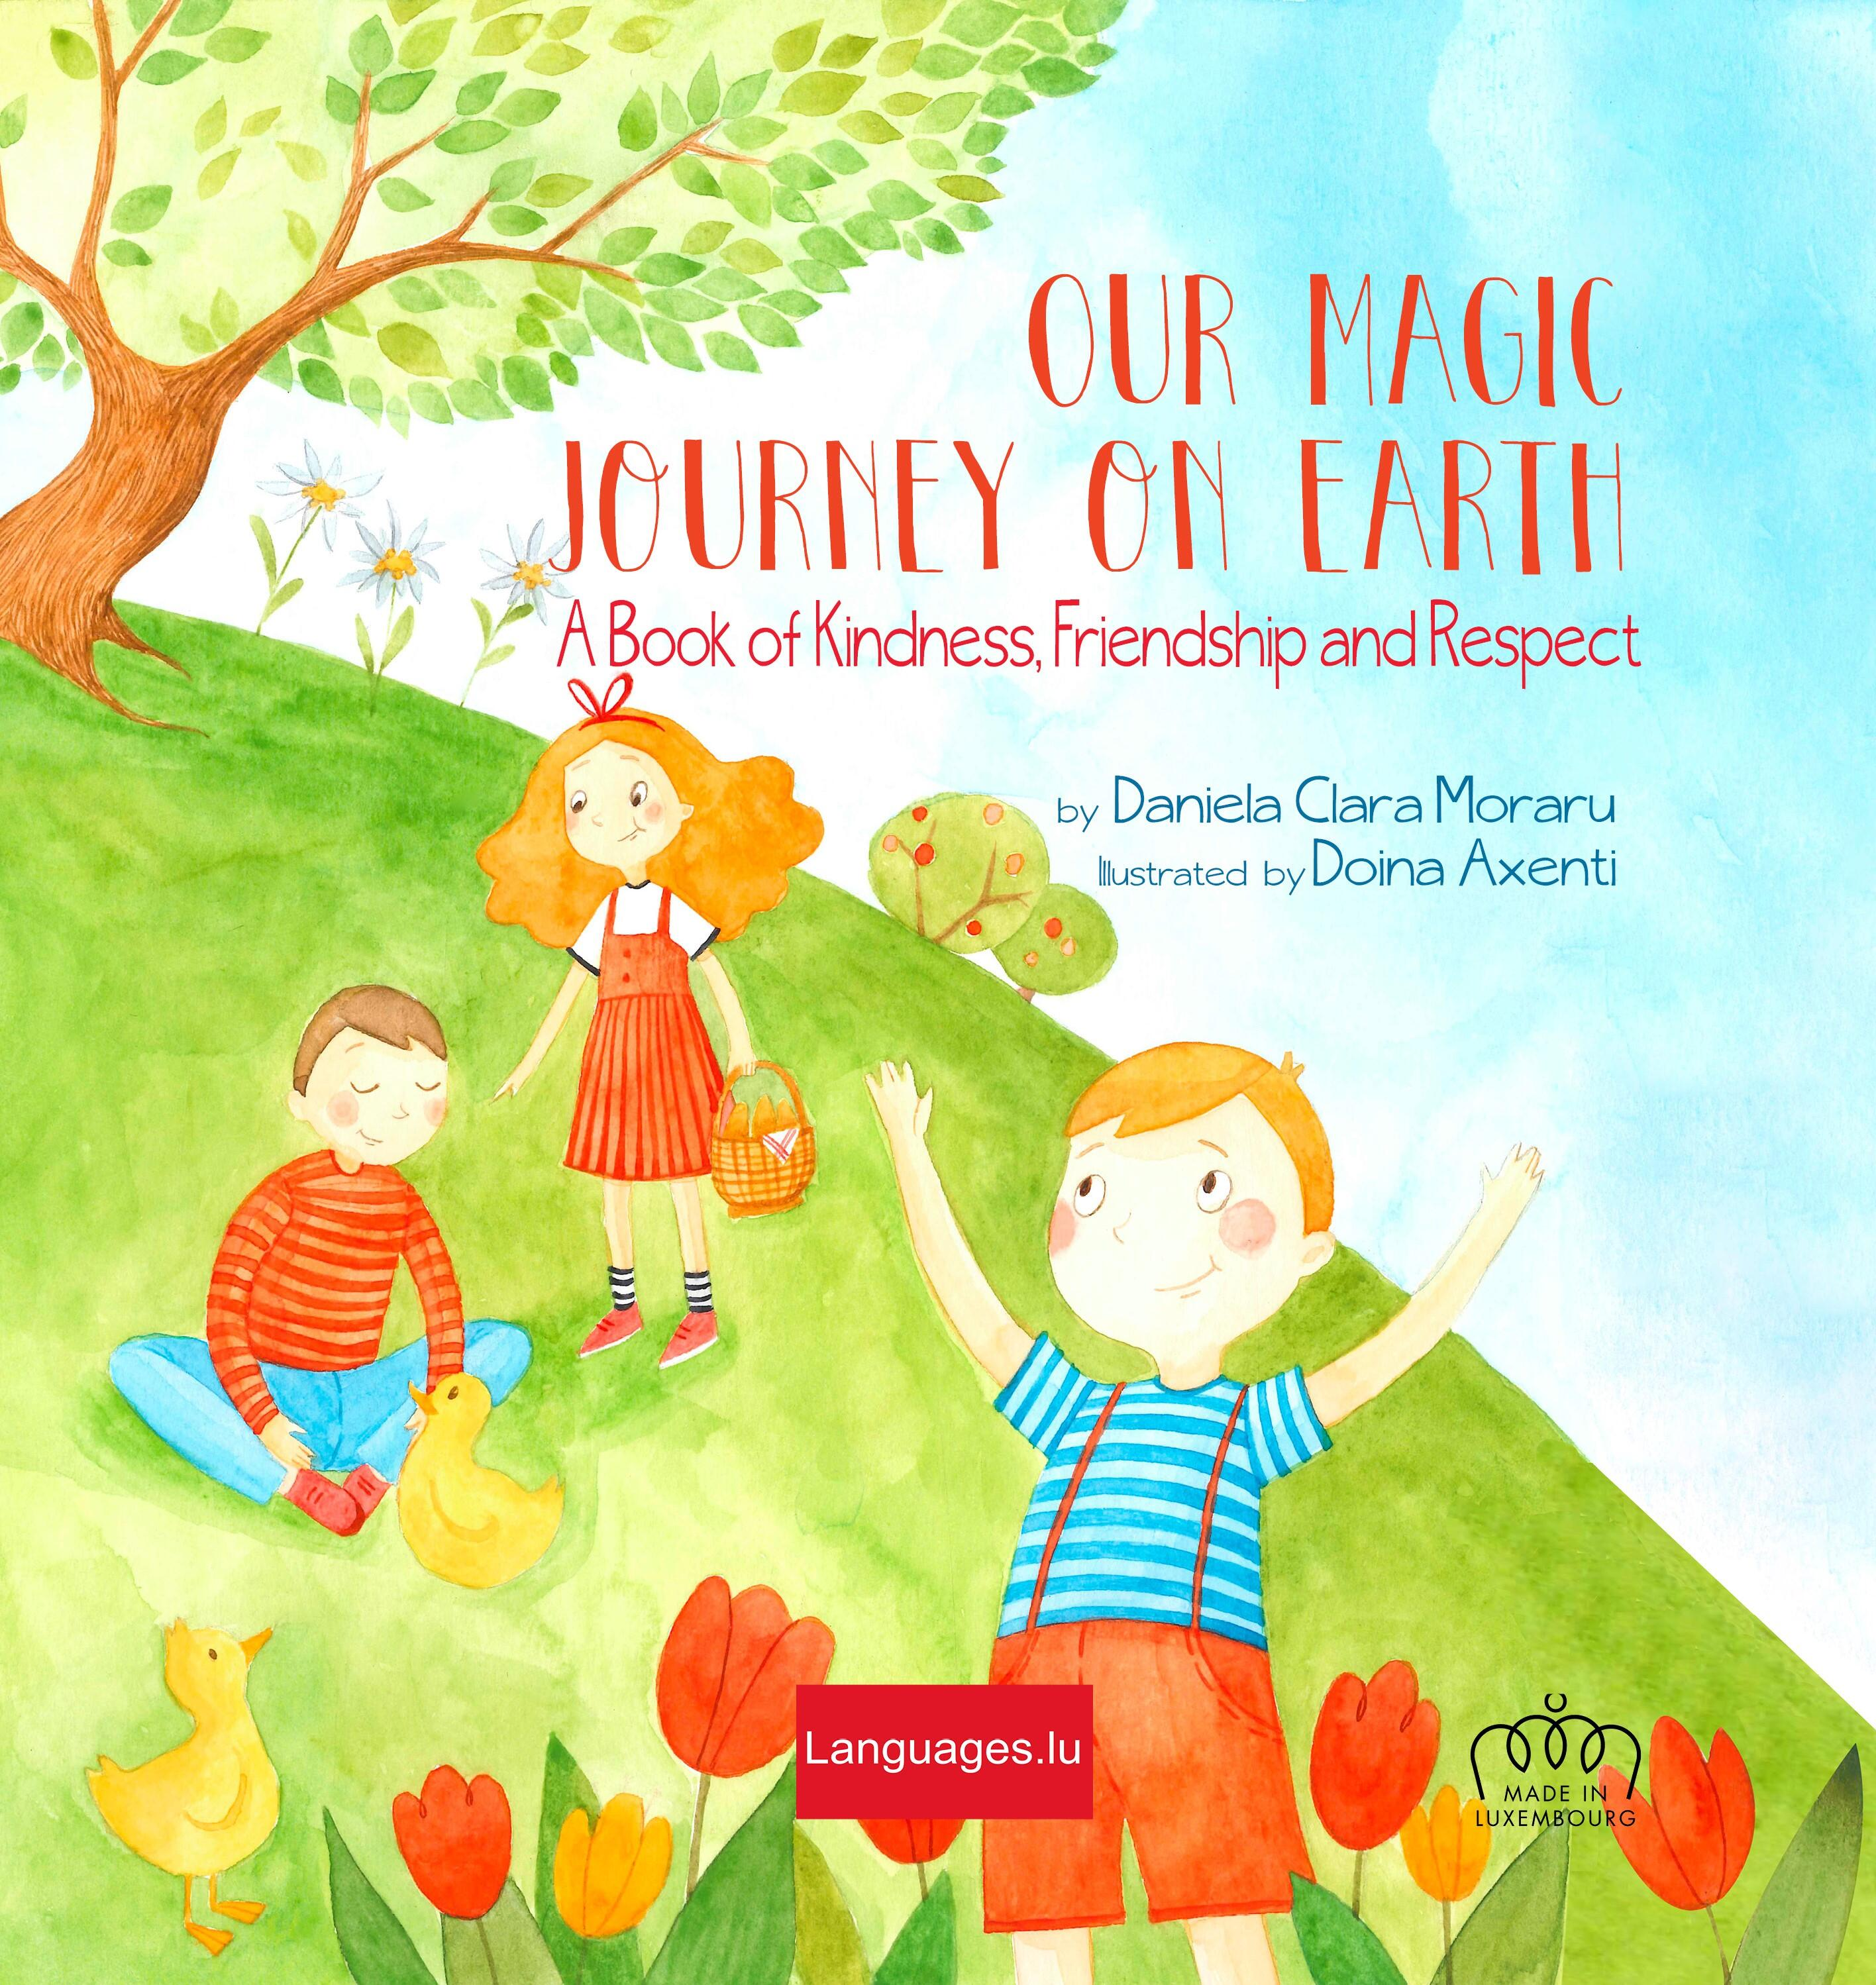 Our Magic Journey on Earth. A Book of Kindness, Friendship and Respect